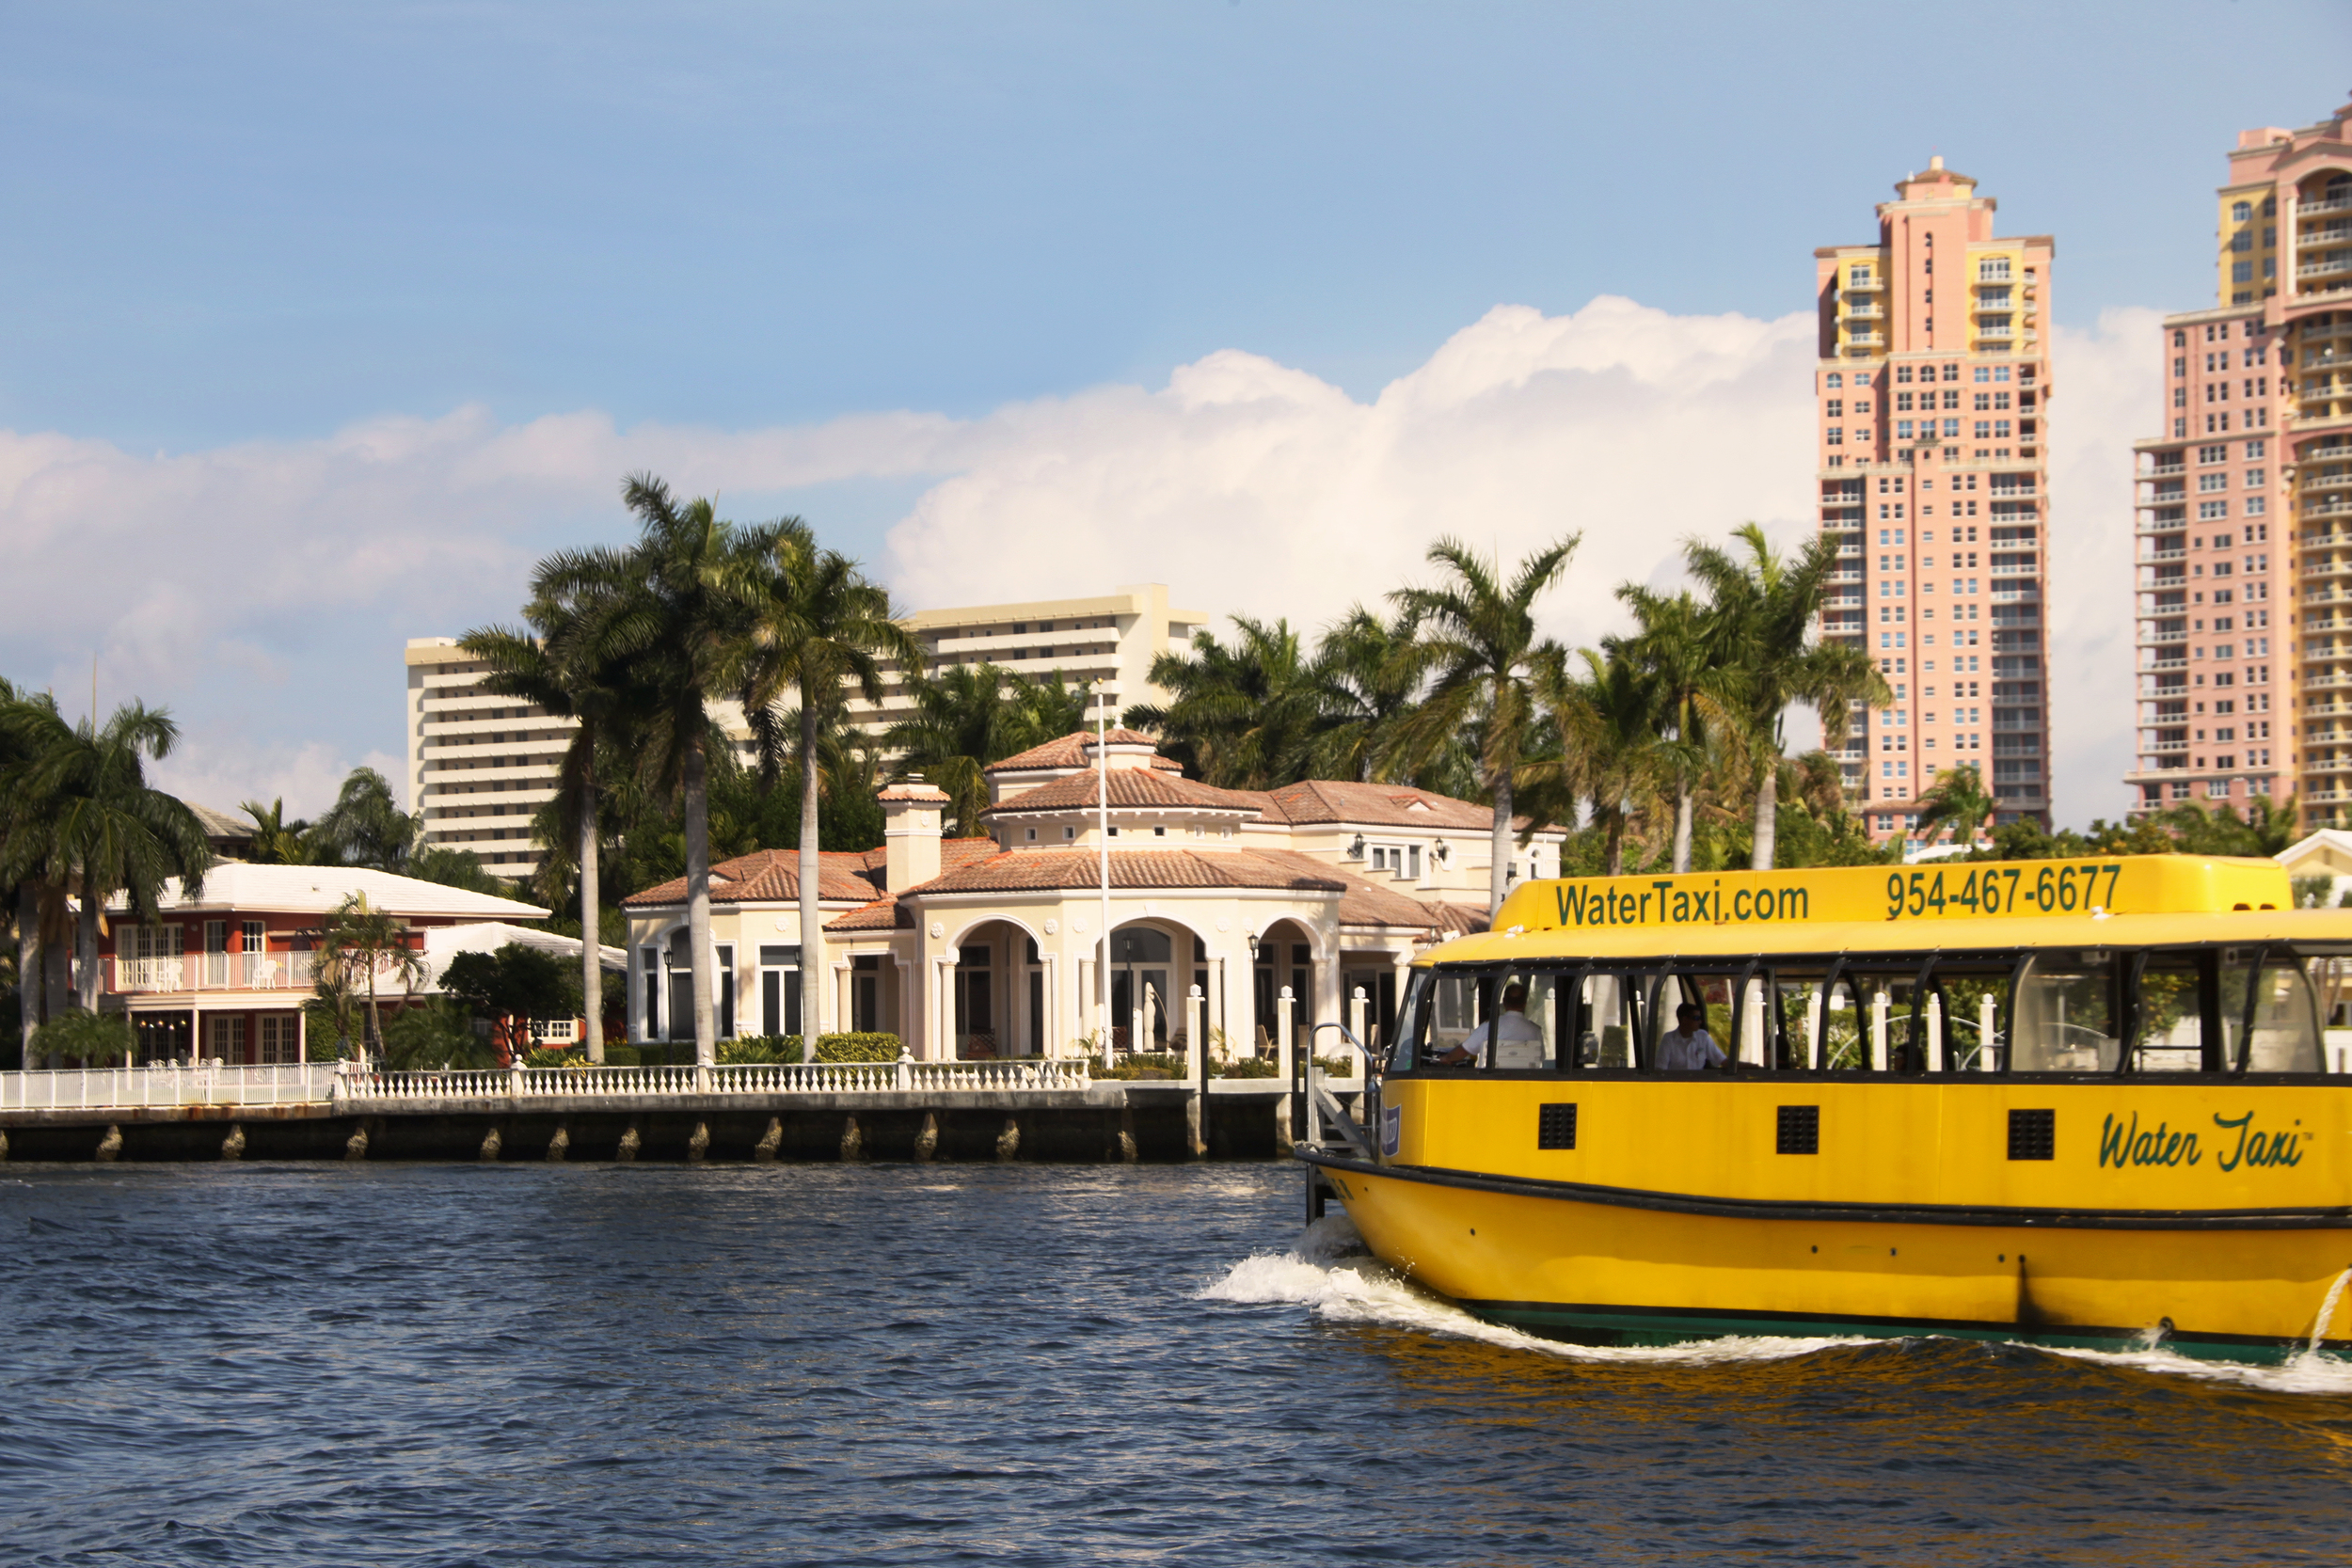 Water Taxi Ft. Lauderdale.jpg